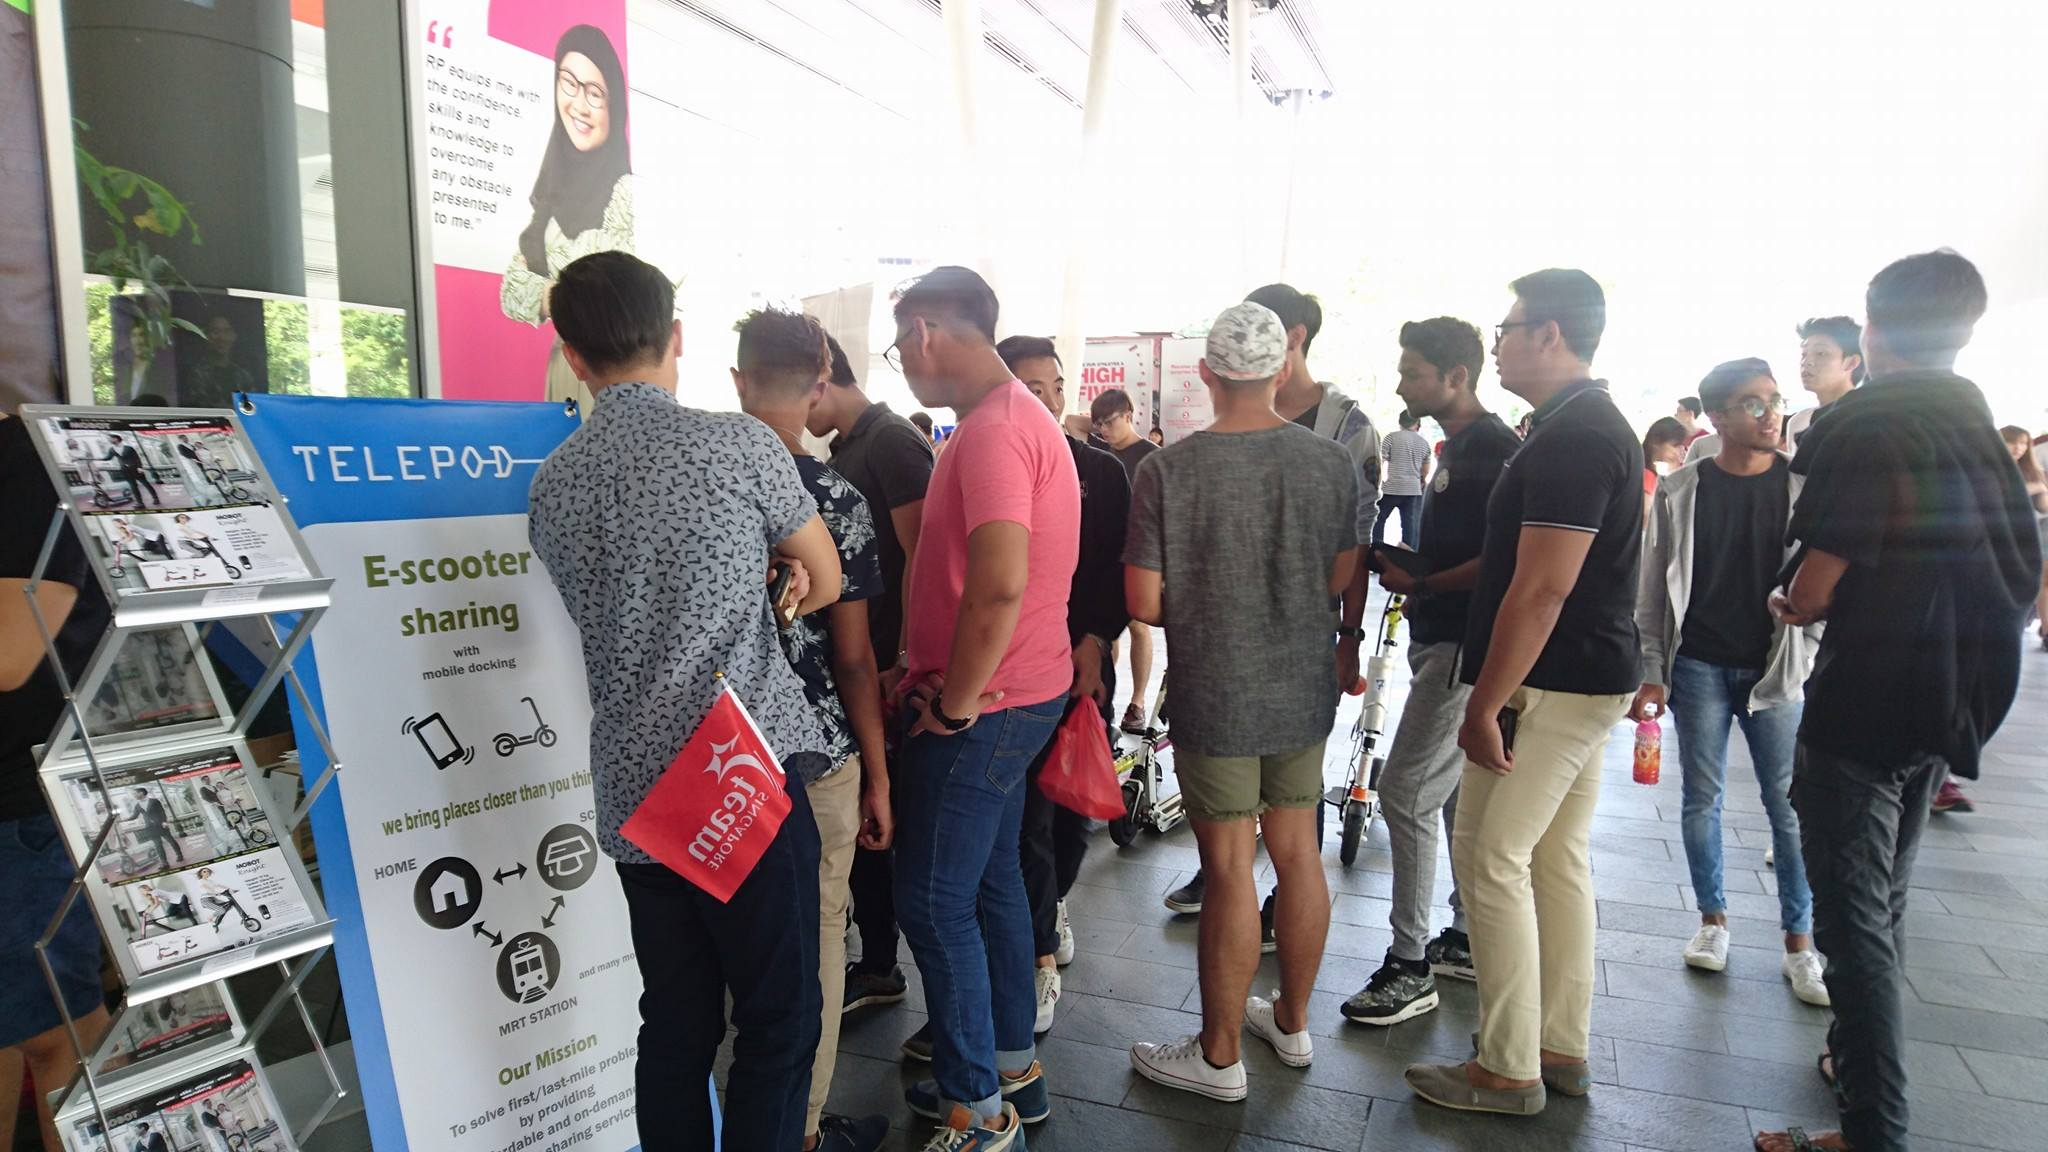 People queueing up at Woodlands MRT to rent e-scooters during Telepod's August trial run.